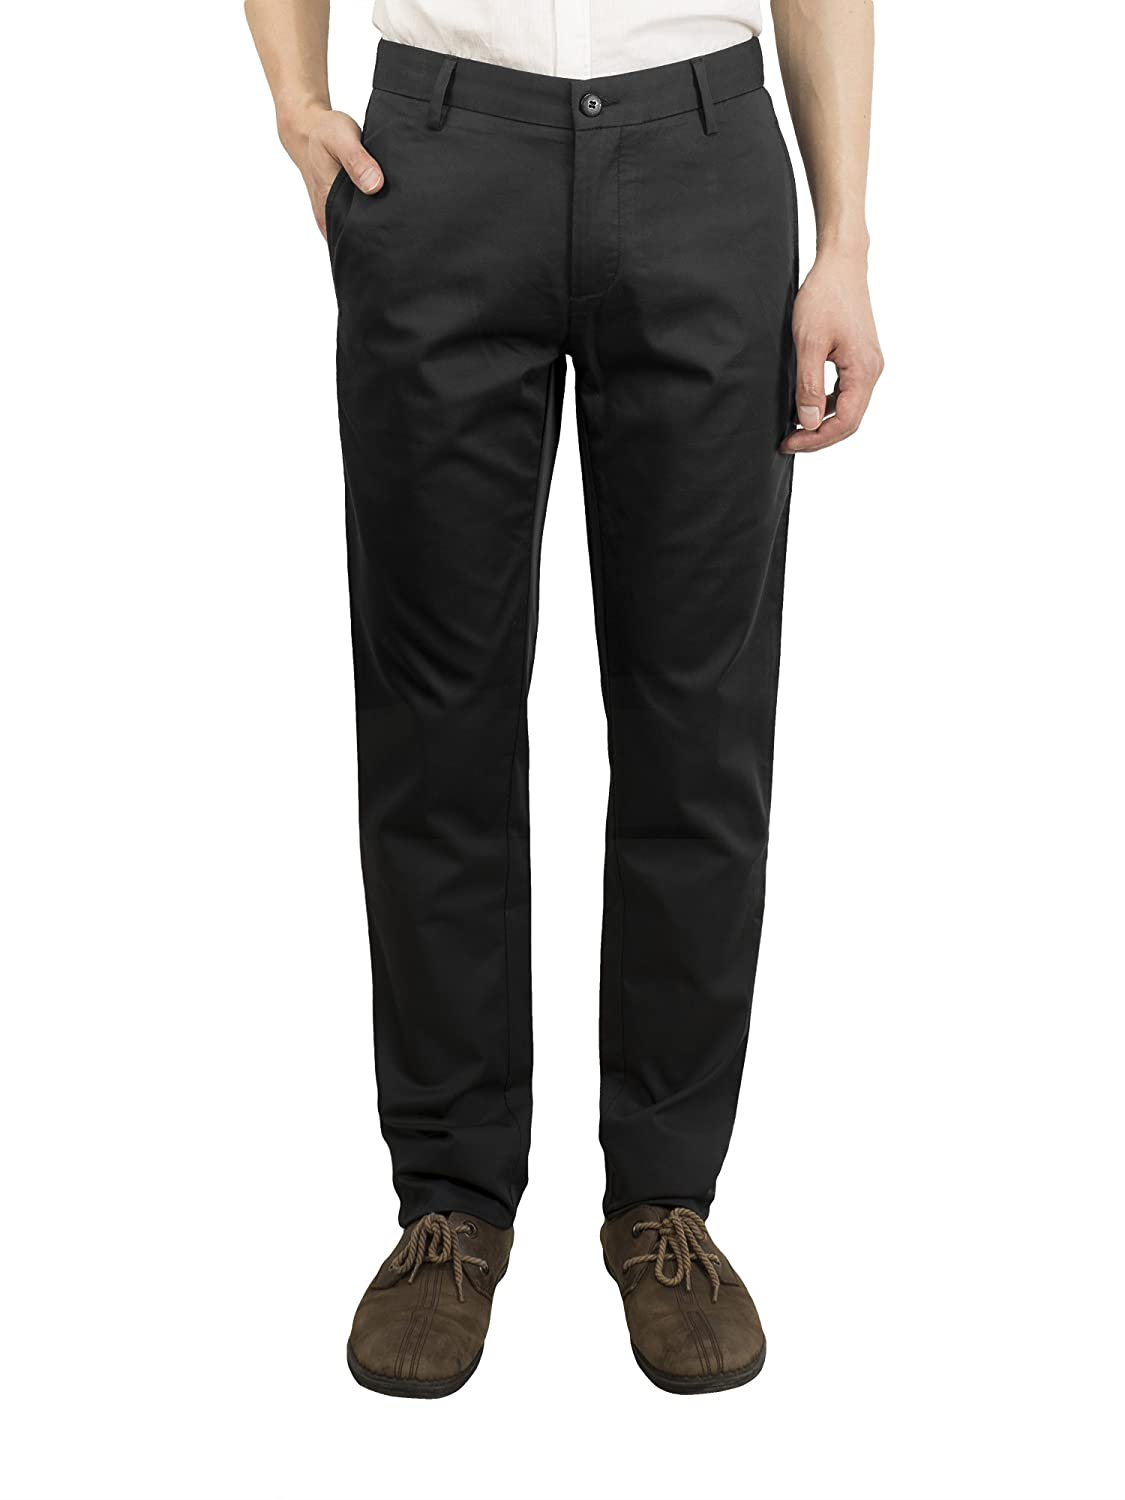 138efc62b15b4a CloSoul Direct Chino Hose Herren Business Hosen Anzughose Anzug Hose Casual  Slim: Amazon.de: Bekleidung